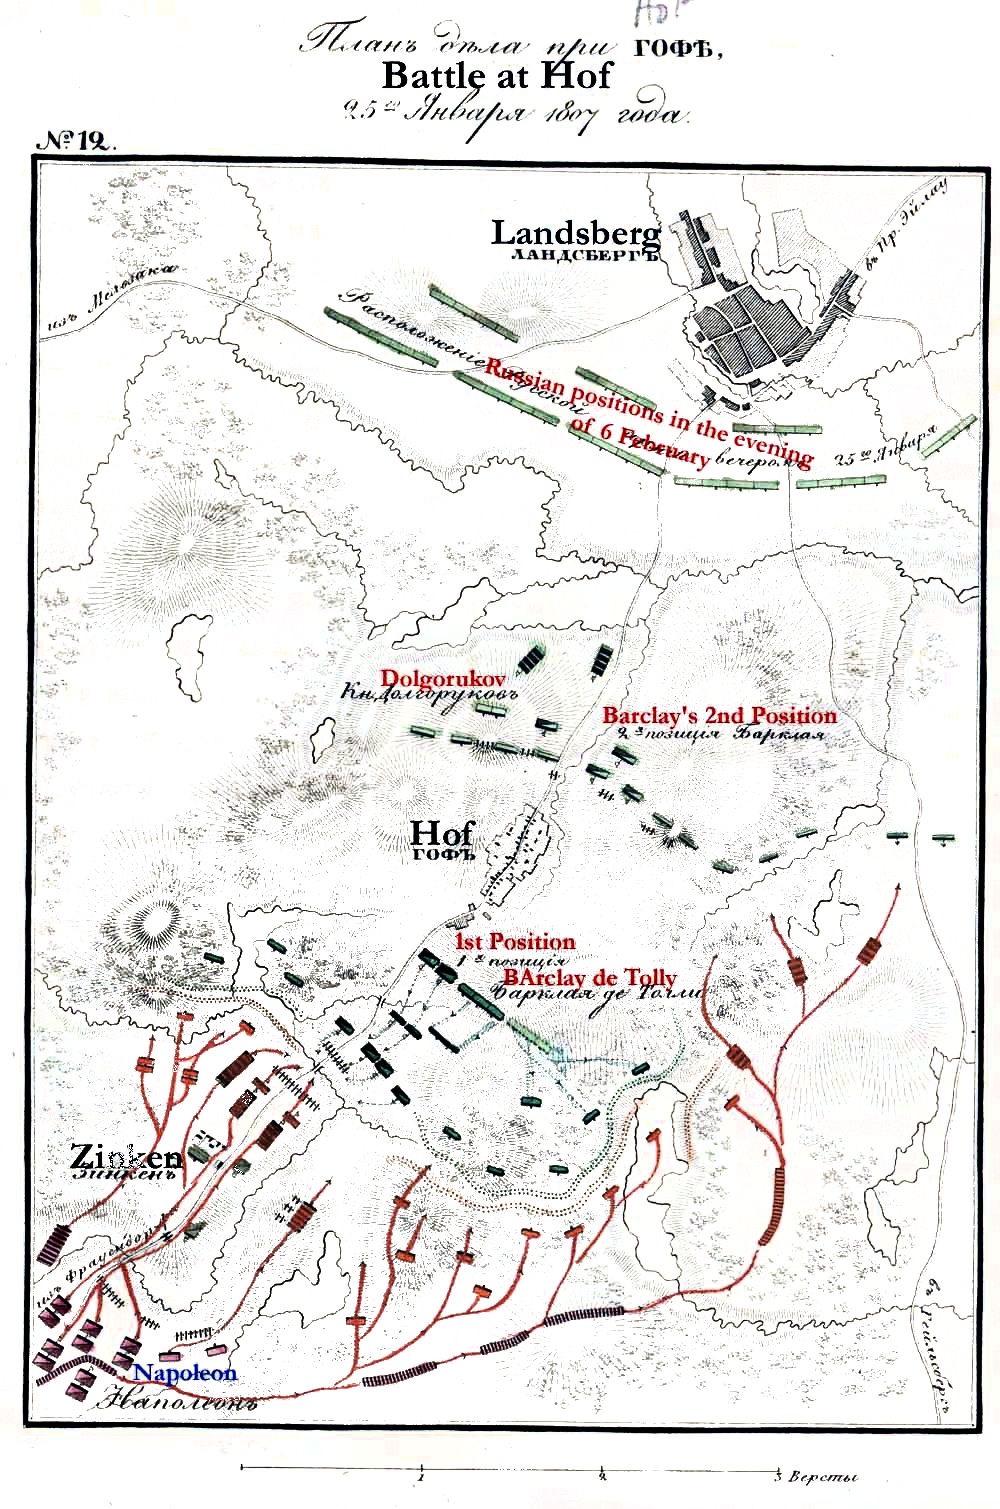 The battlefield of Hoff. (Now Dwόrzno) Map supplied by Alexander Mikaberidze